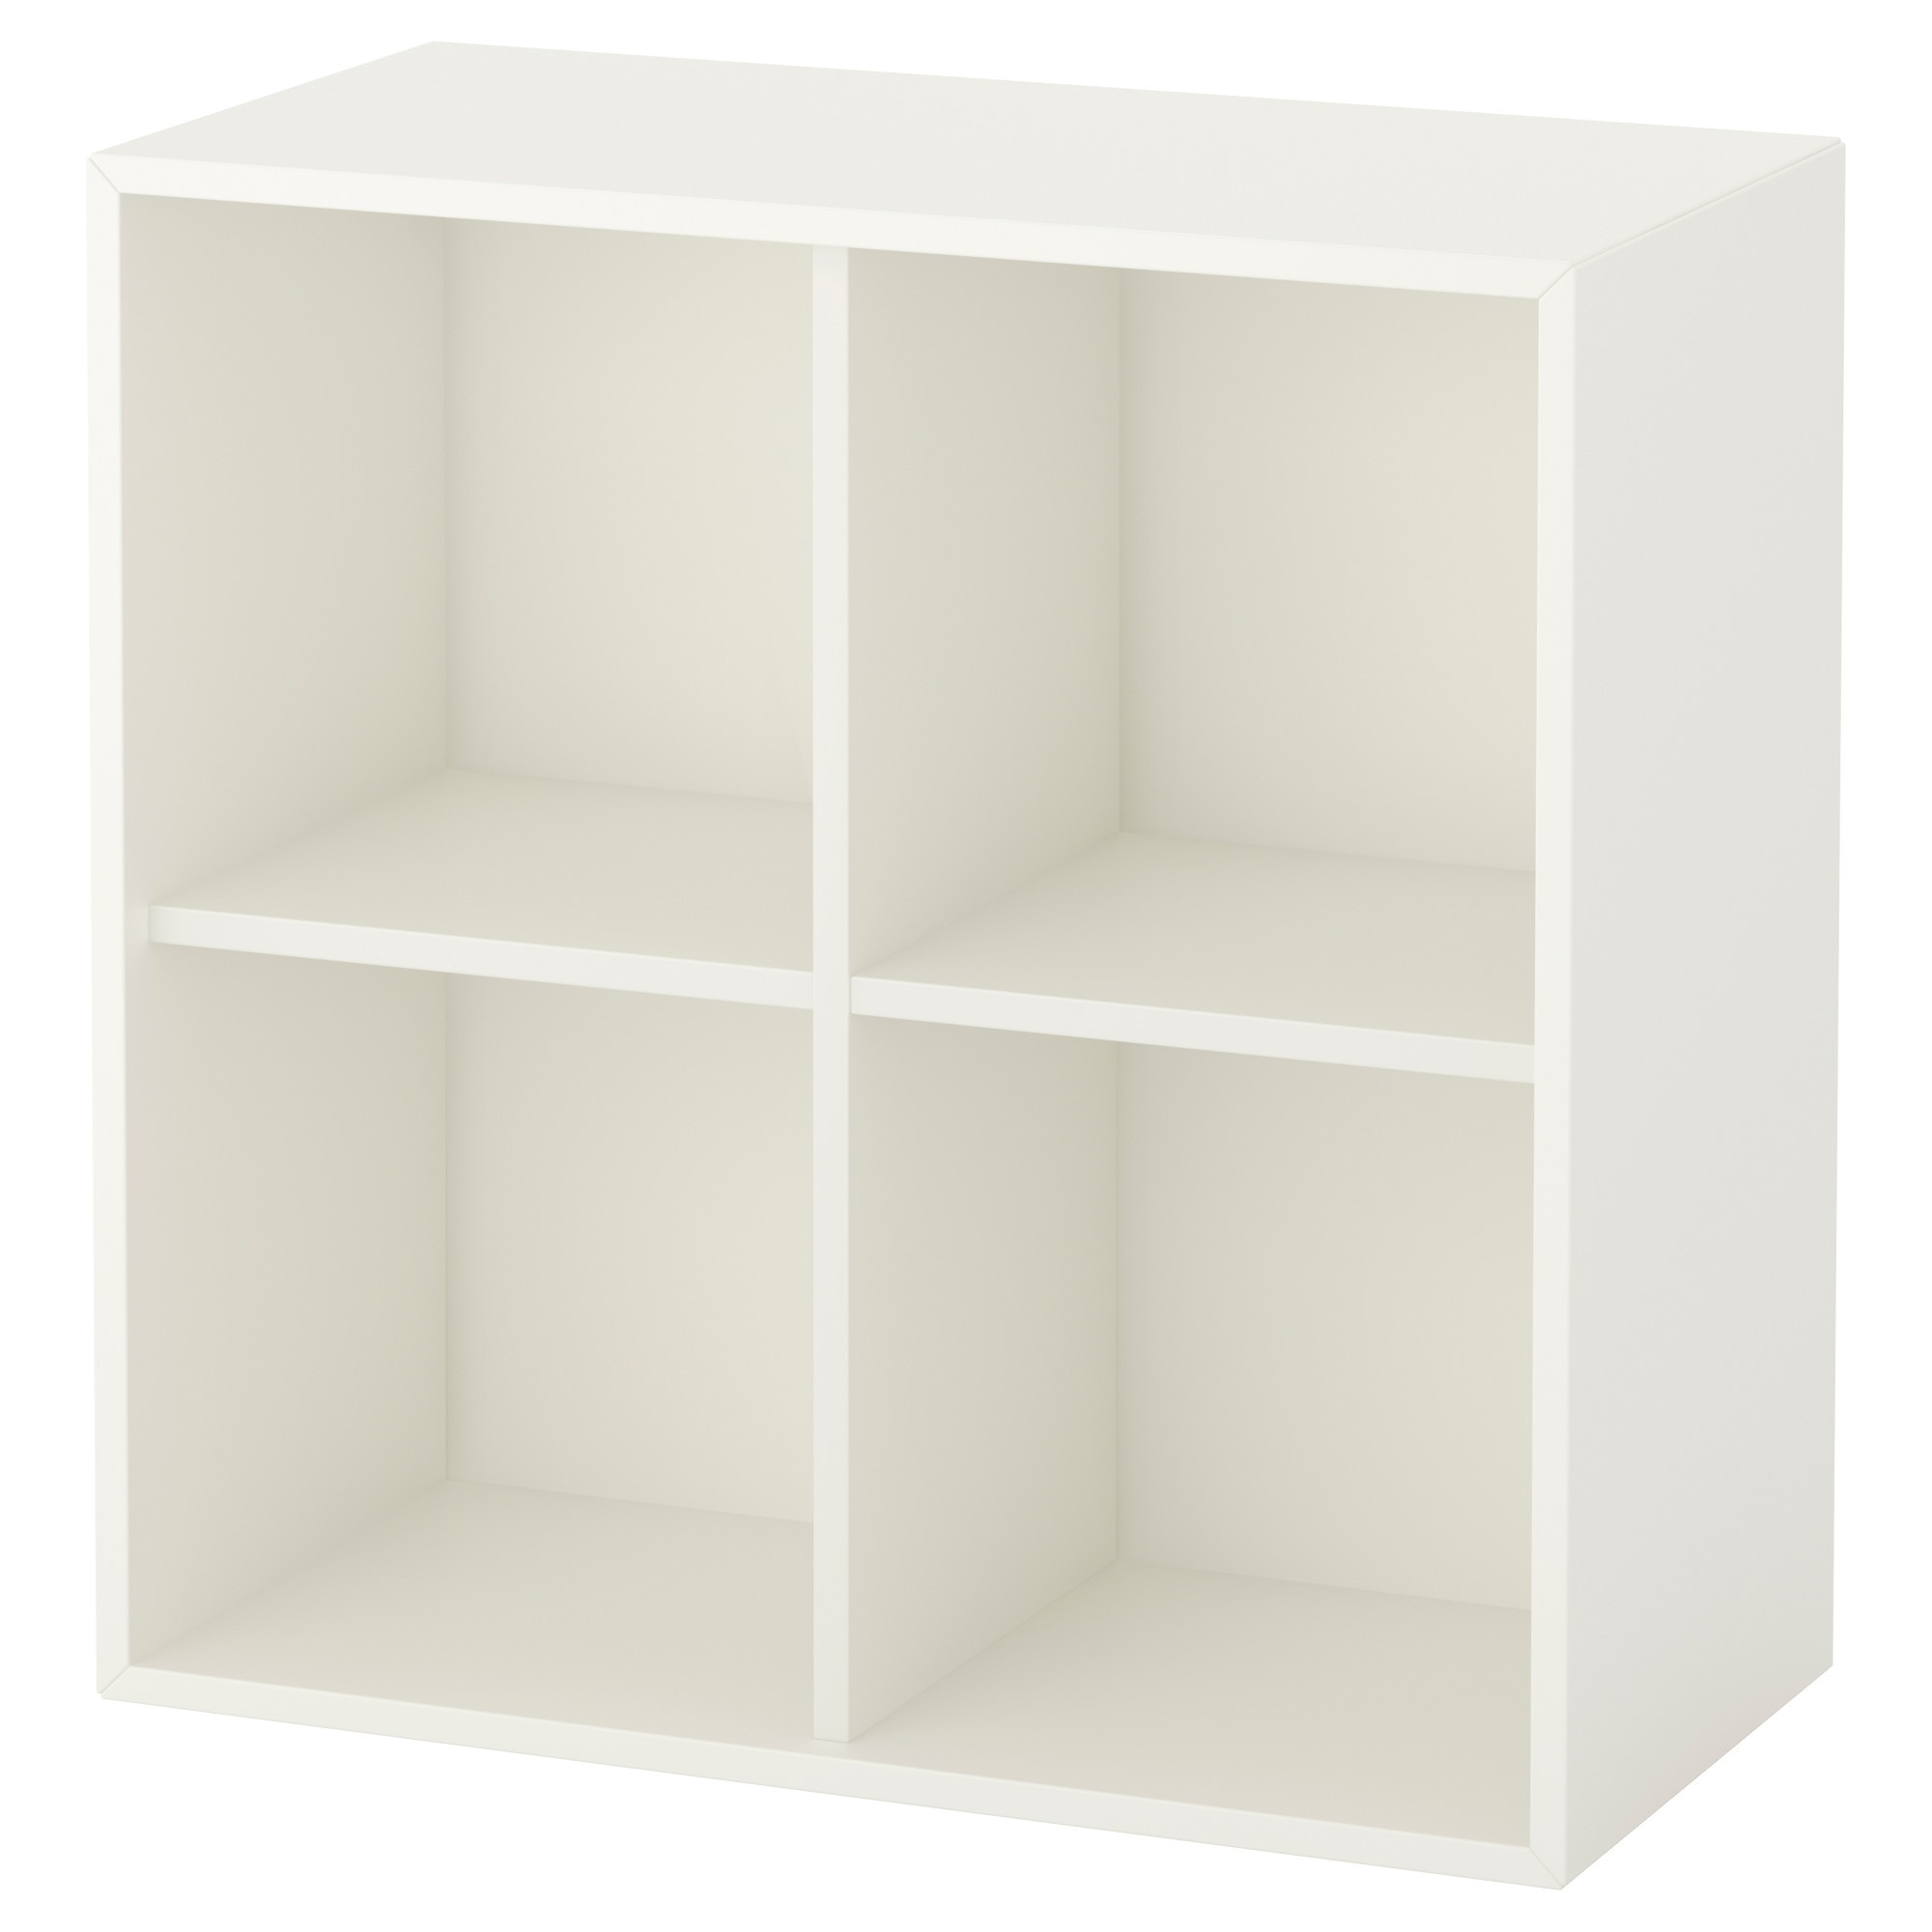 EKET cabinet with 4 compartments, white Width: 27 1/2